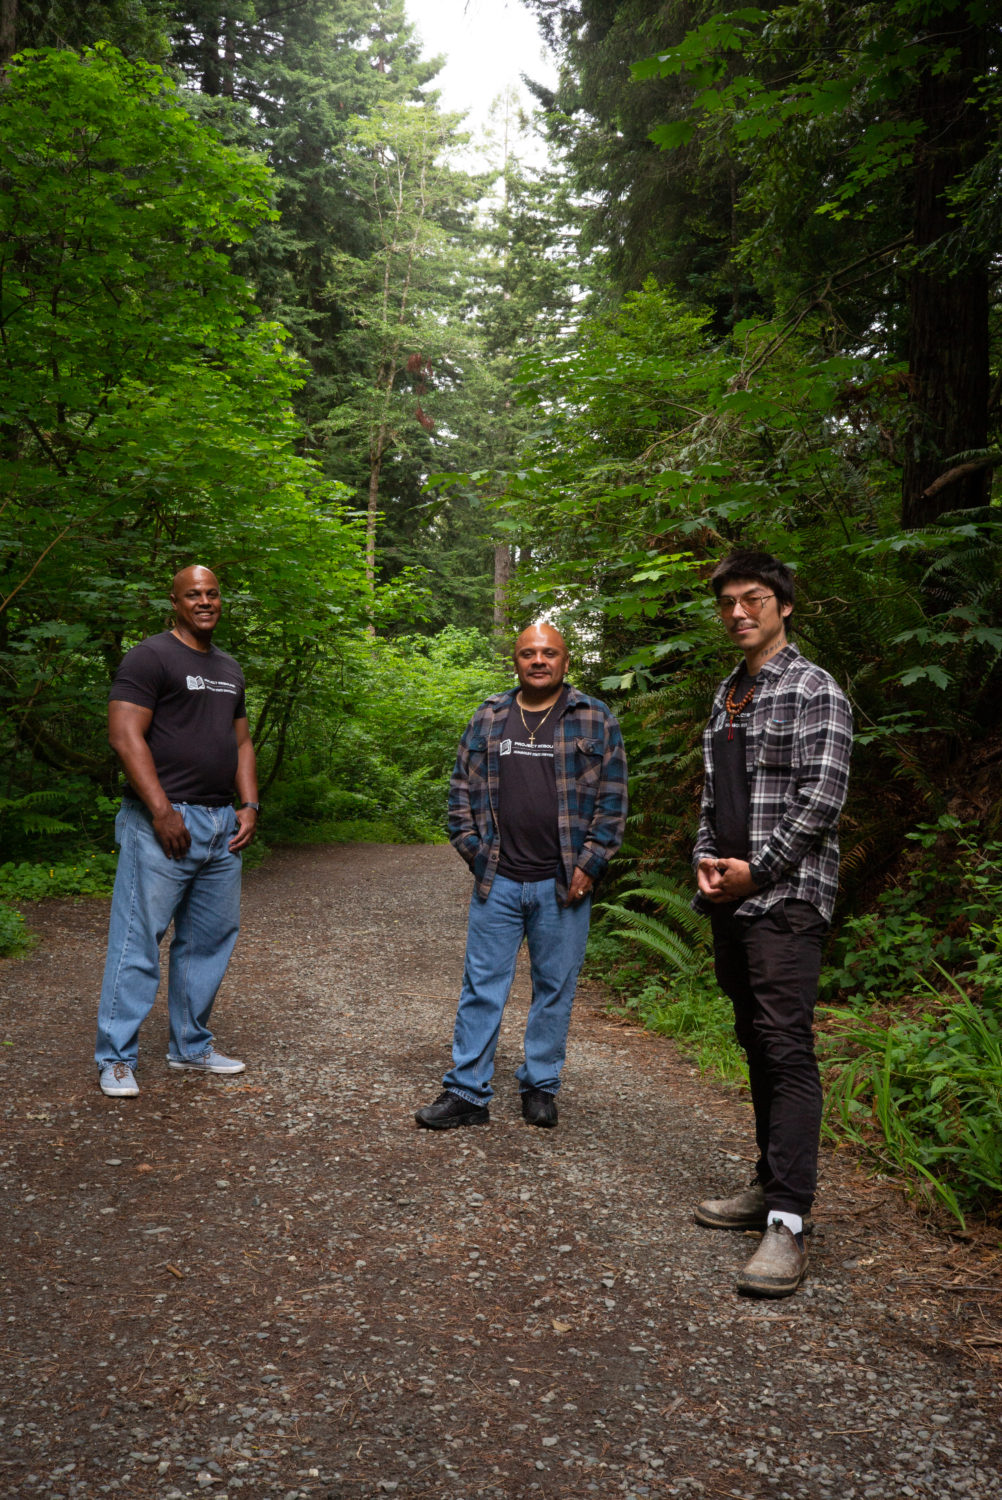 Clark-Taylor-Wallin-Redwoods-pr_hi_res-1000724, Beacons of hope: Humboldt State's Project Rebound builds a prison-to-college pipeline, Local News & Views